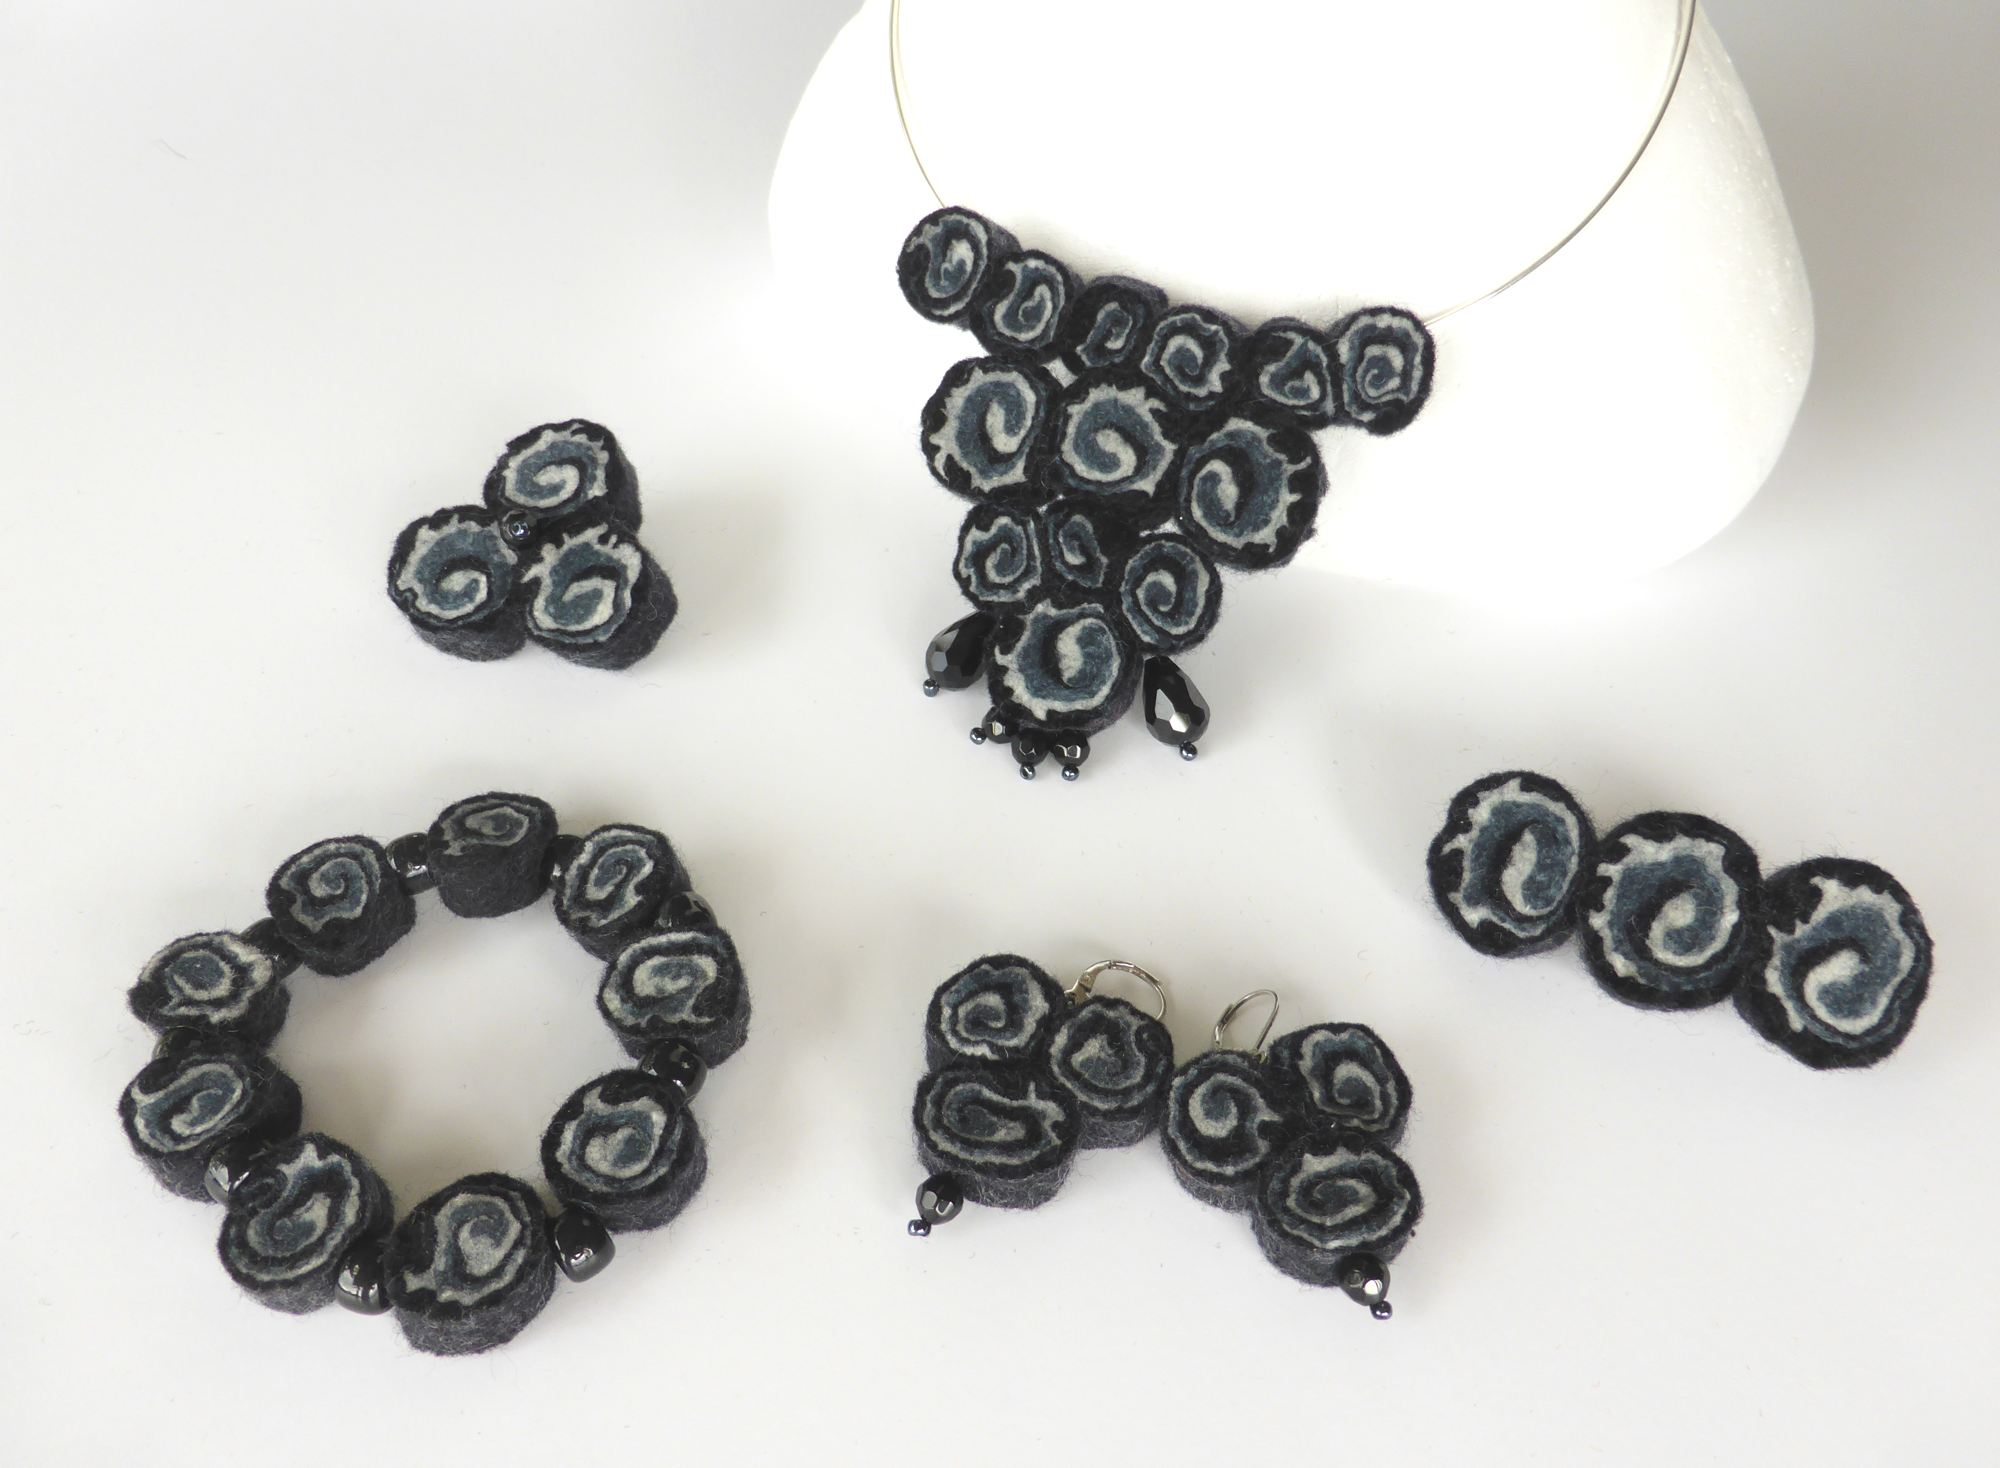 Black felt spiral jewellery necklace (2015) by Andrea McCallum